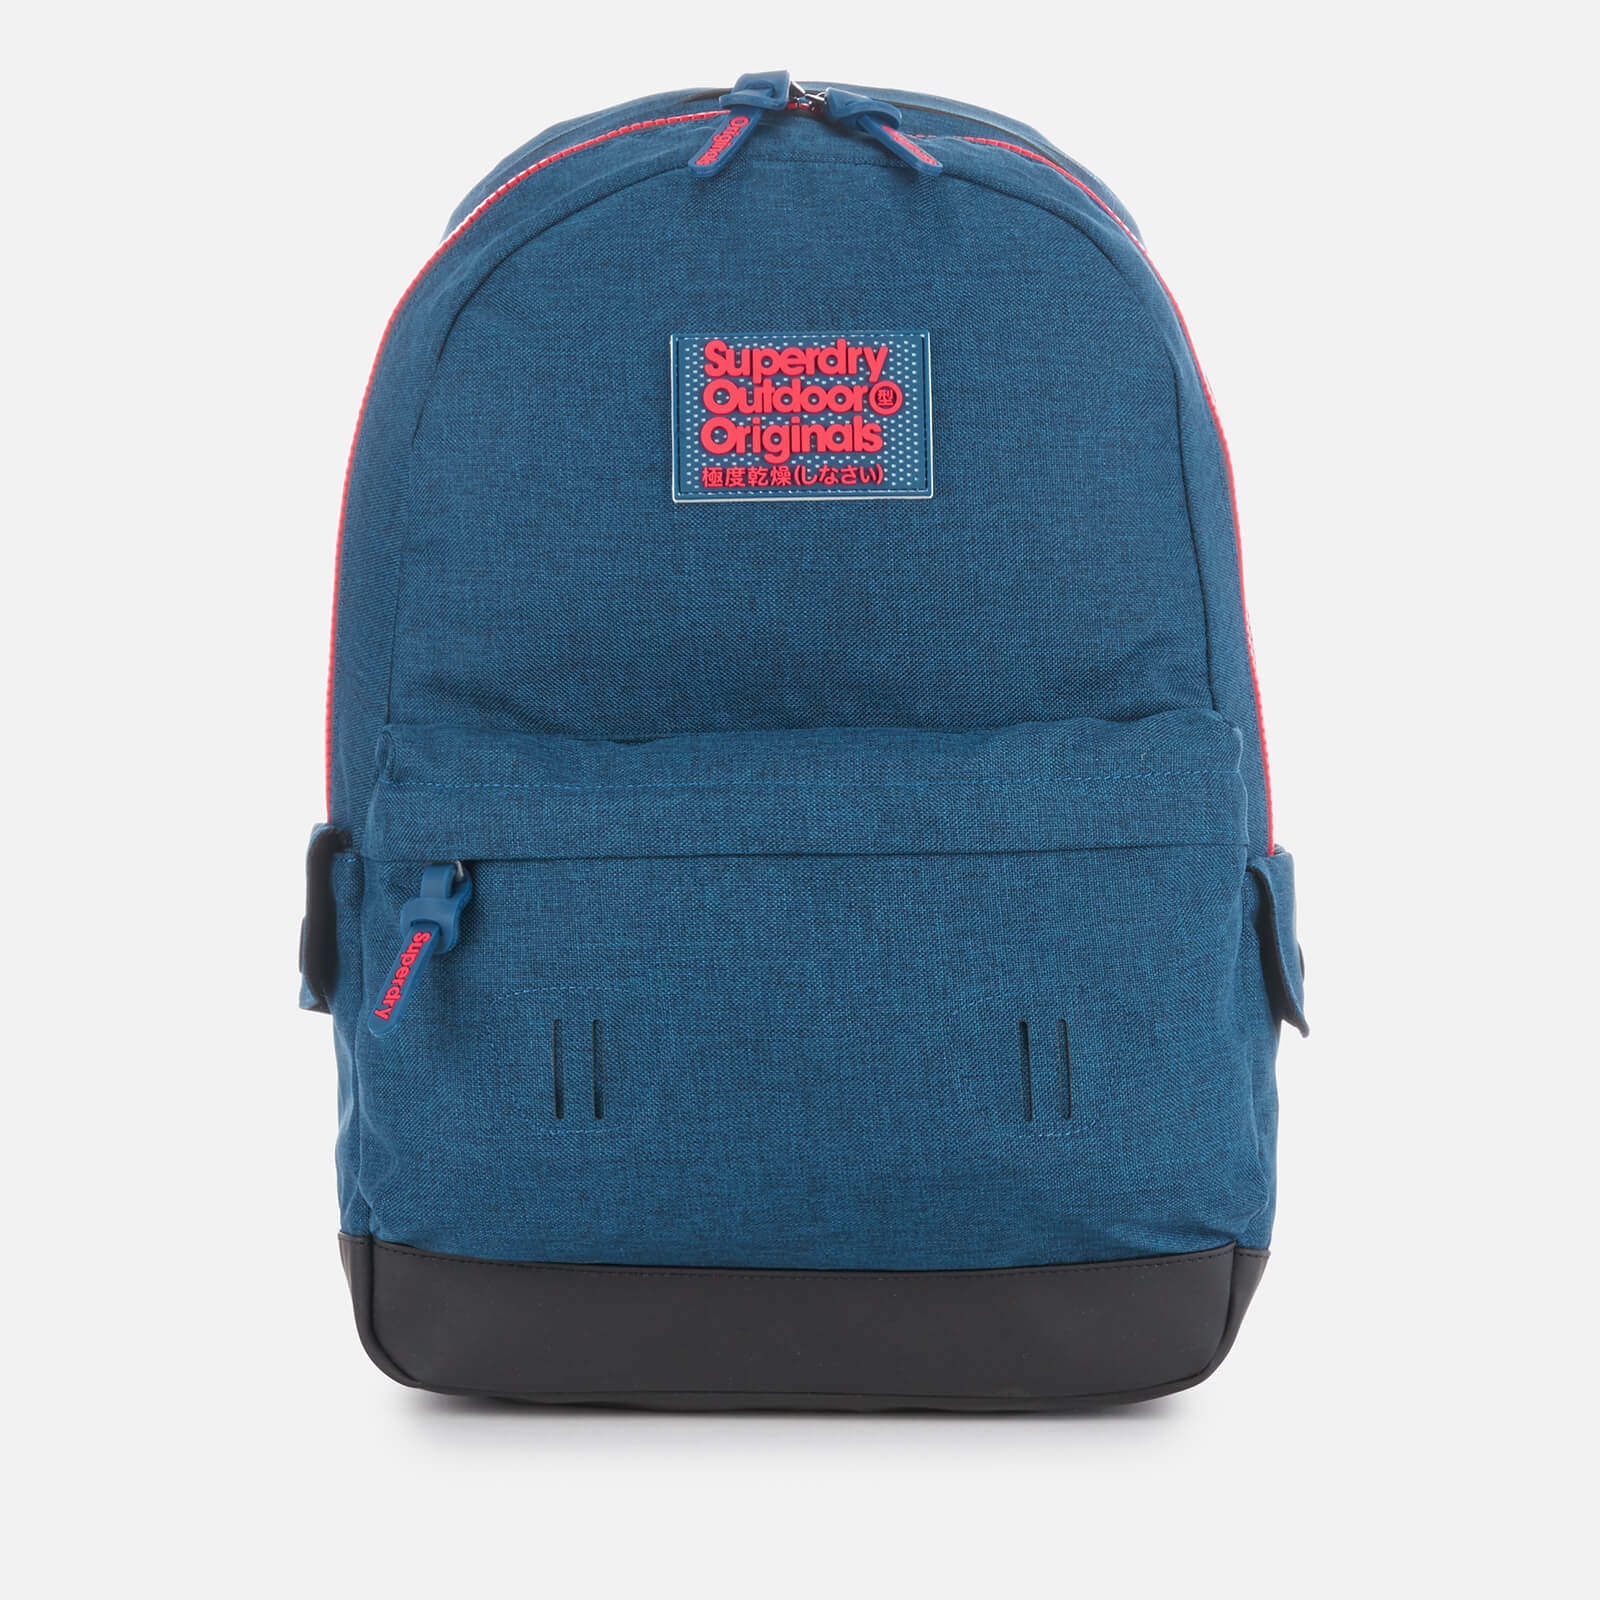 7c4900c4d4843 Superdry Men s Fresh International Montana Backpack - Navy Marl Mens  Accessories